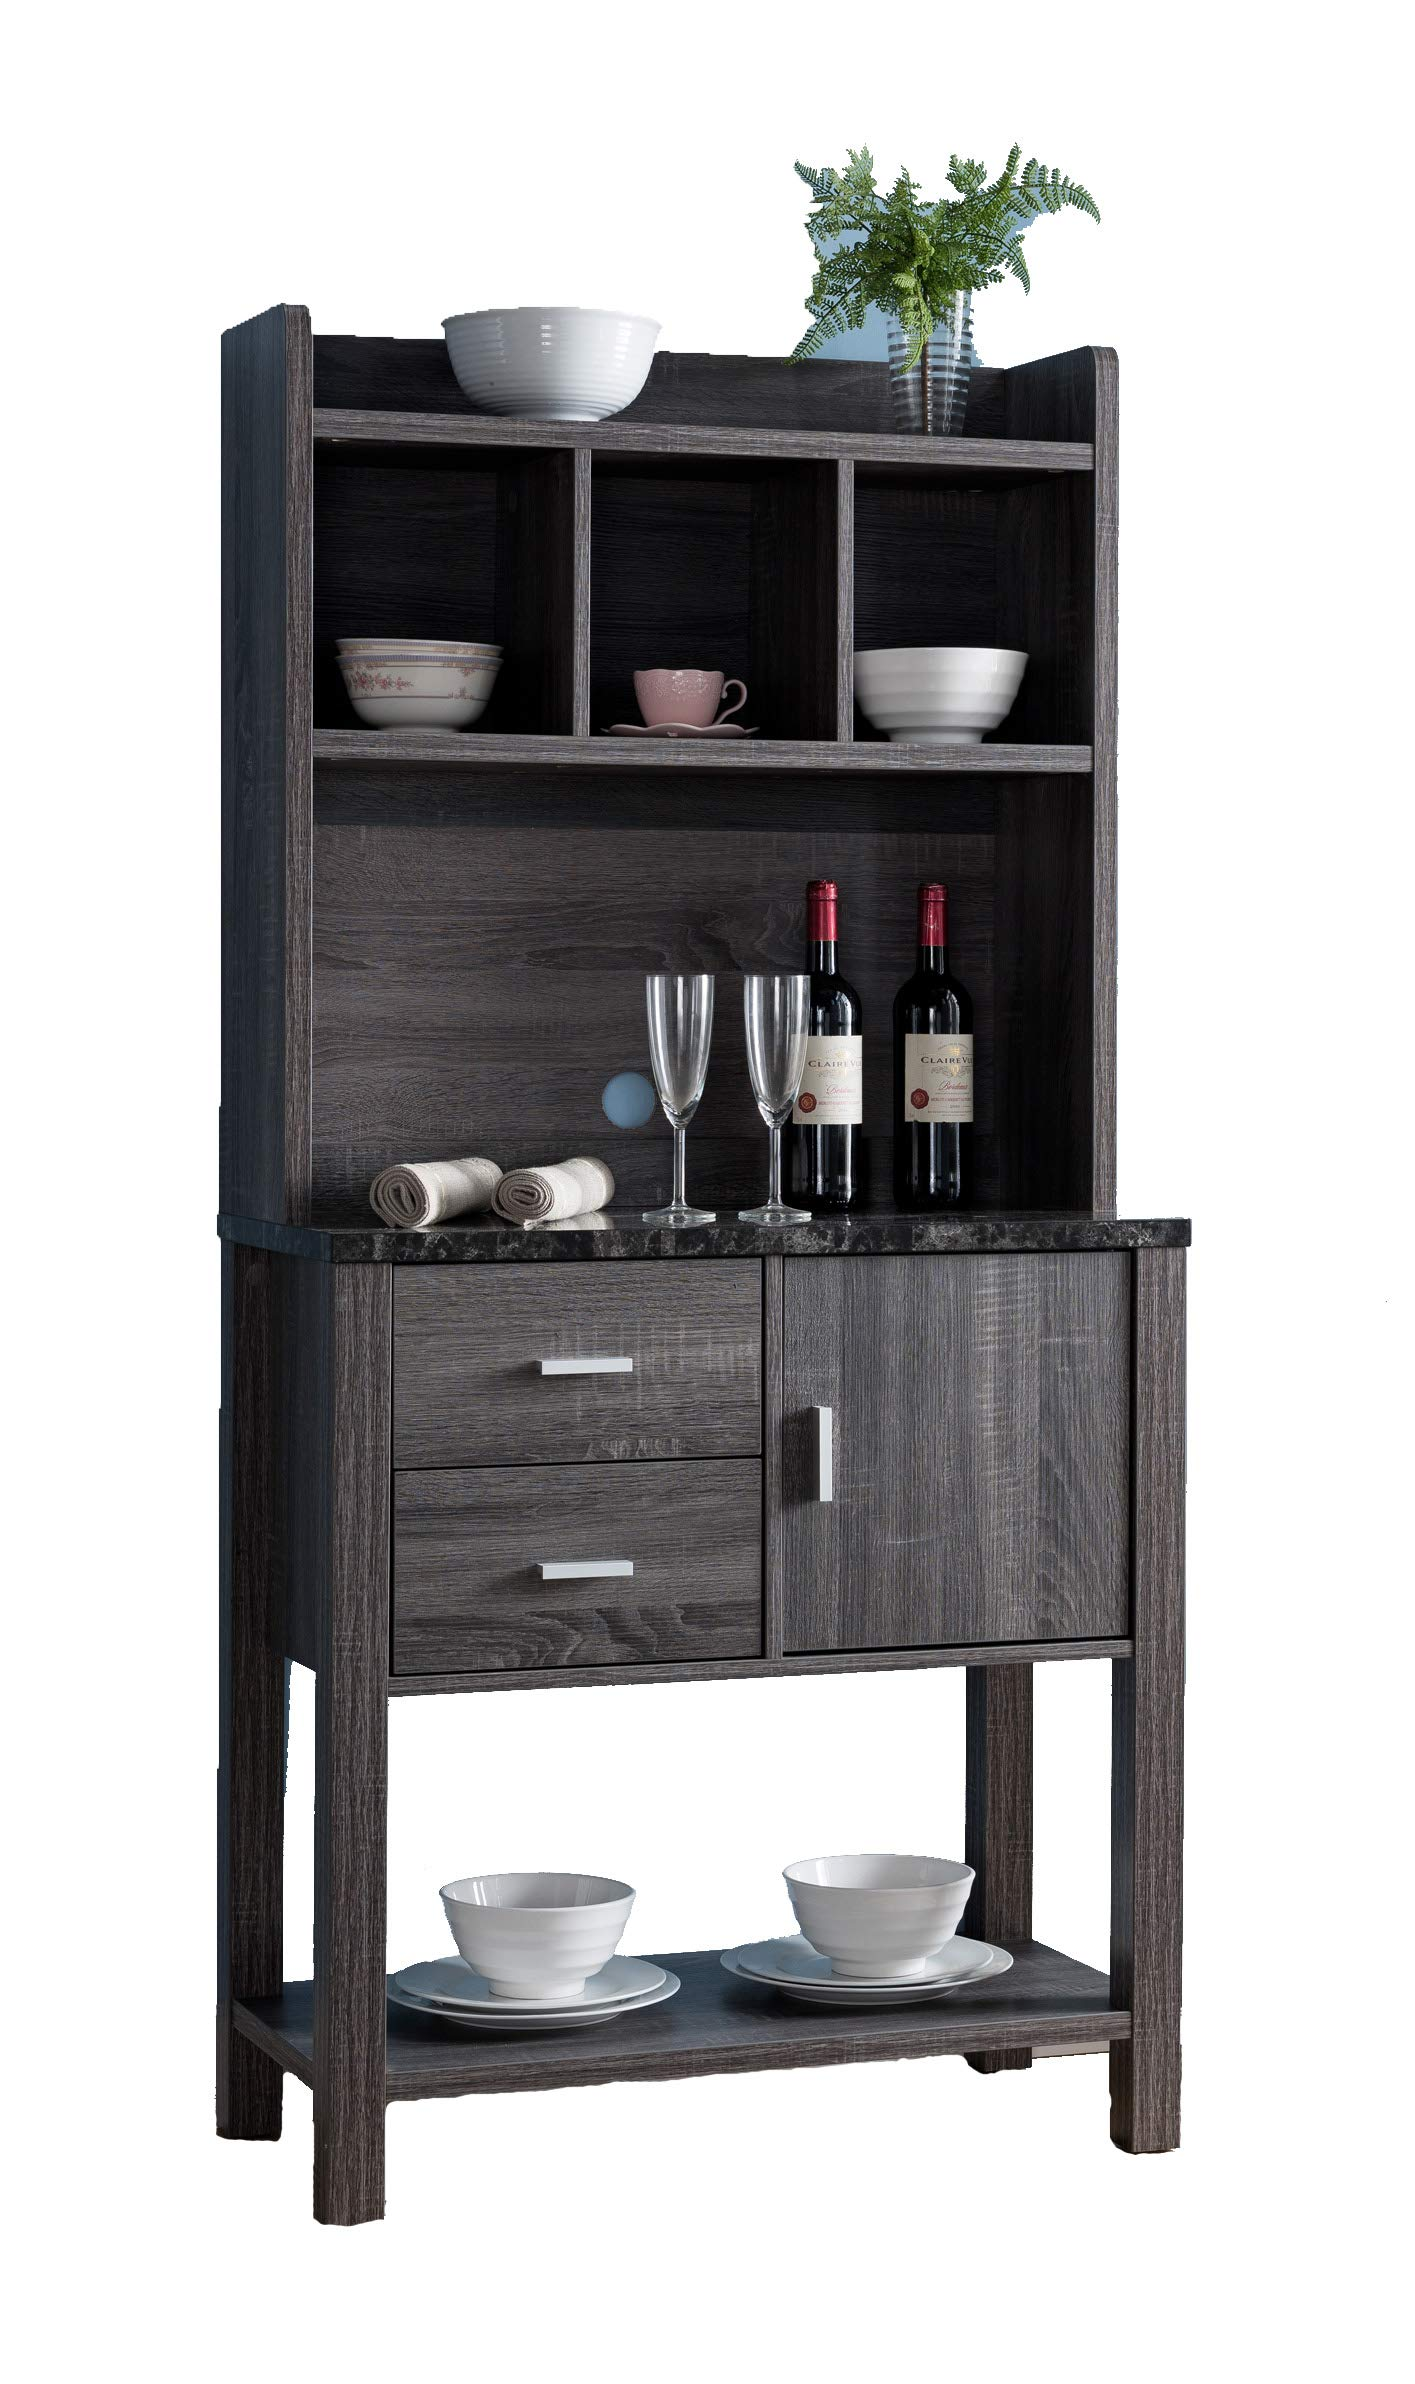 Smart home 161891 Baker's Rack (Two-Tone Finish) by Smart home (Image #4)